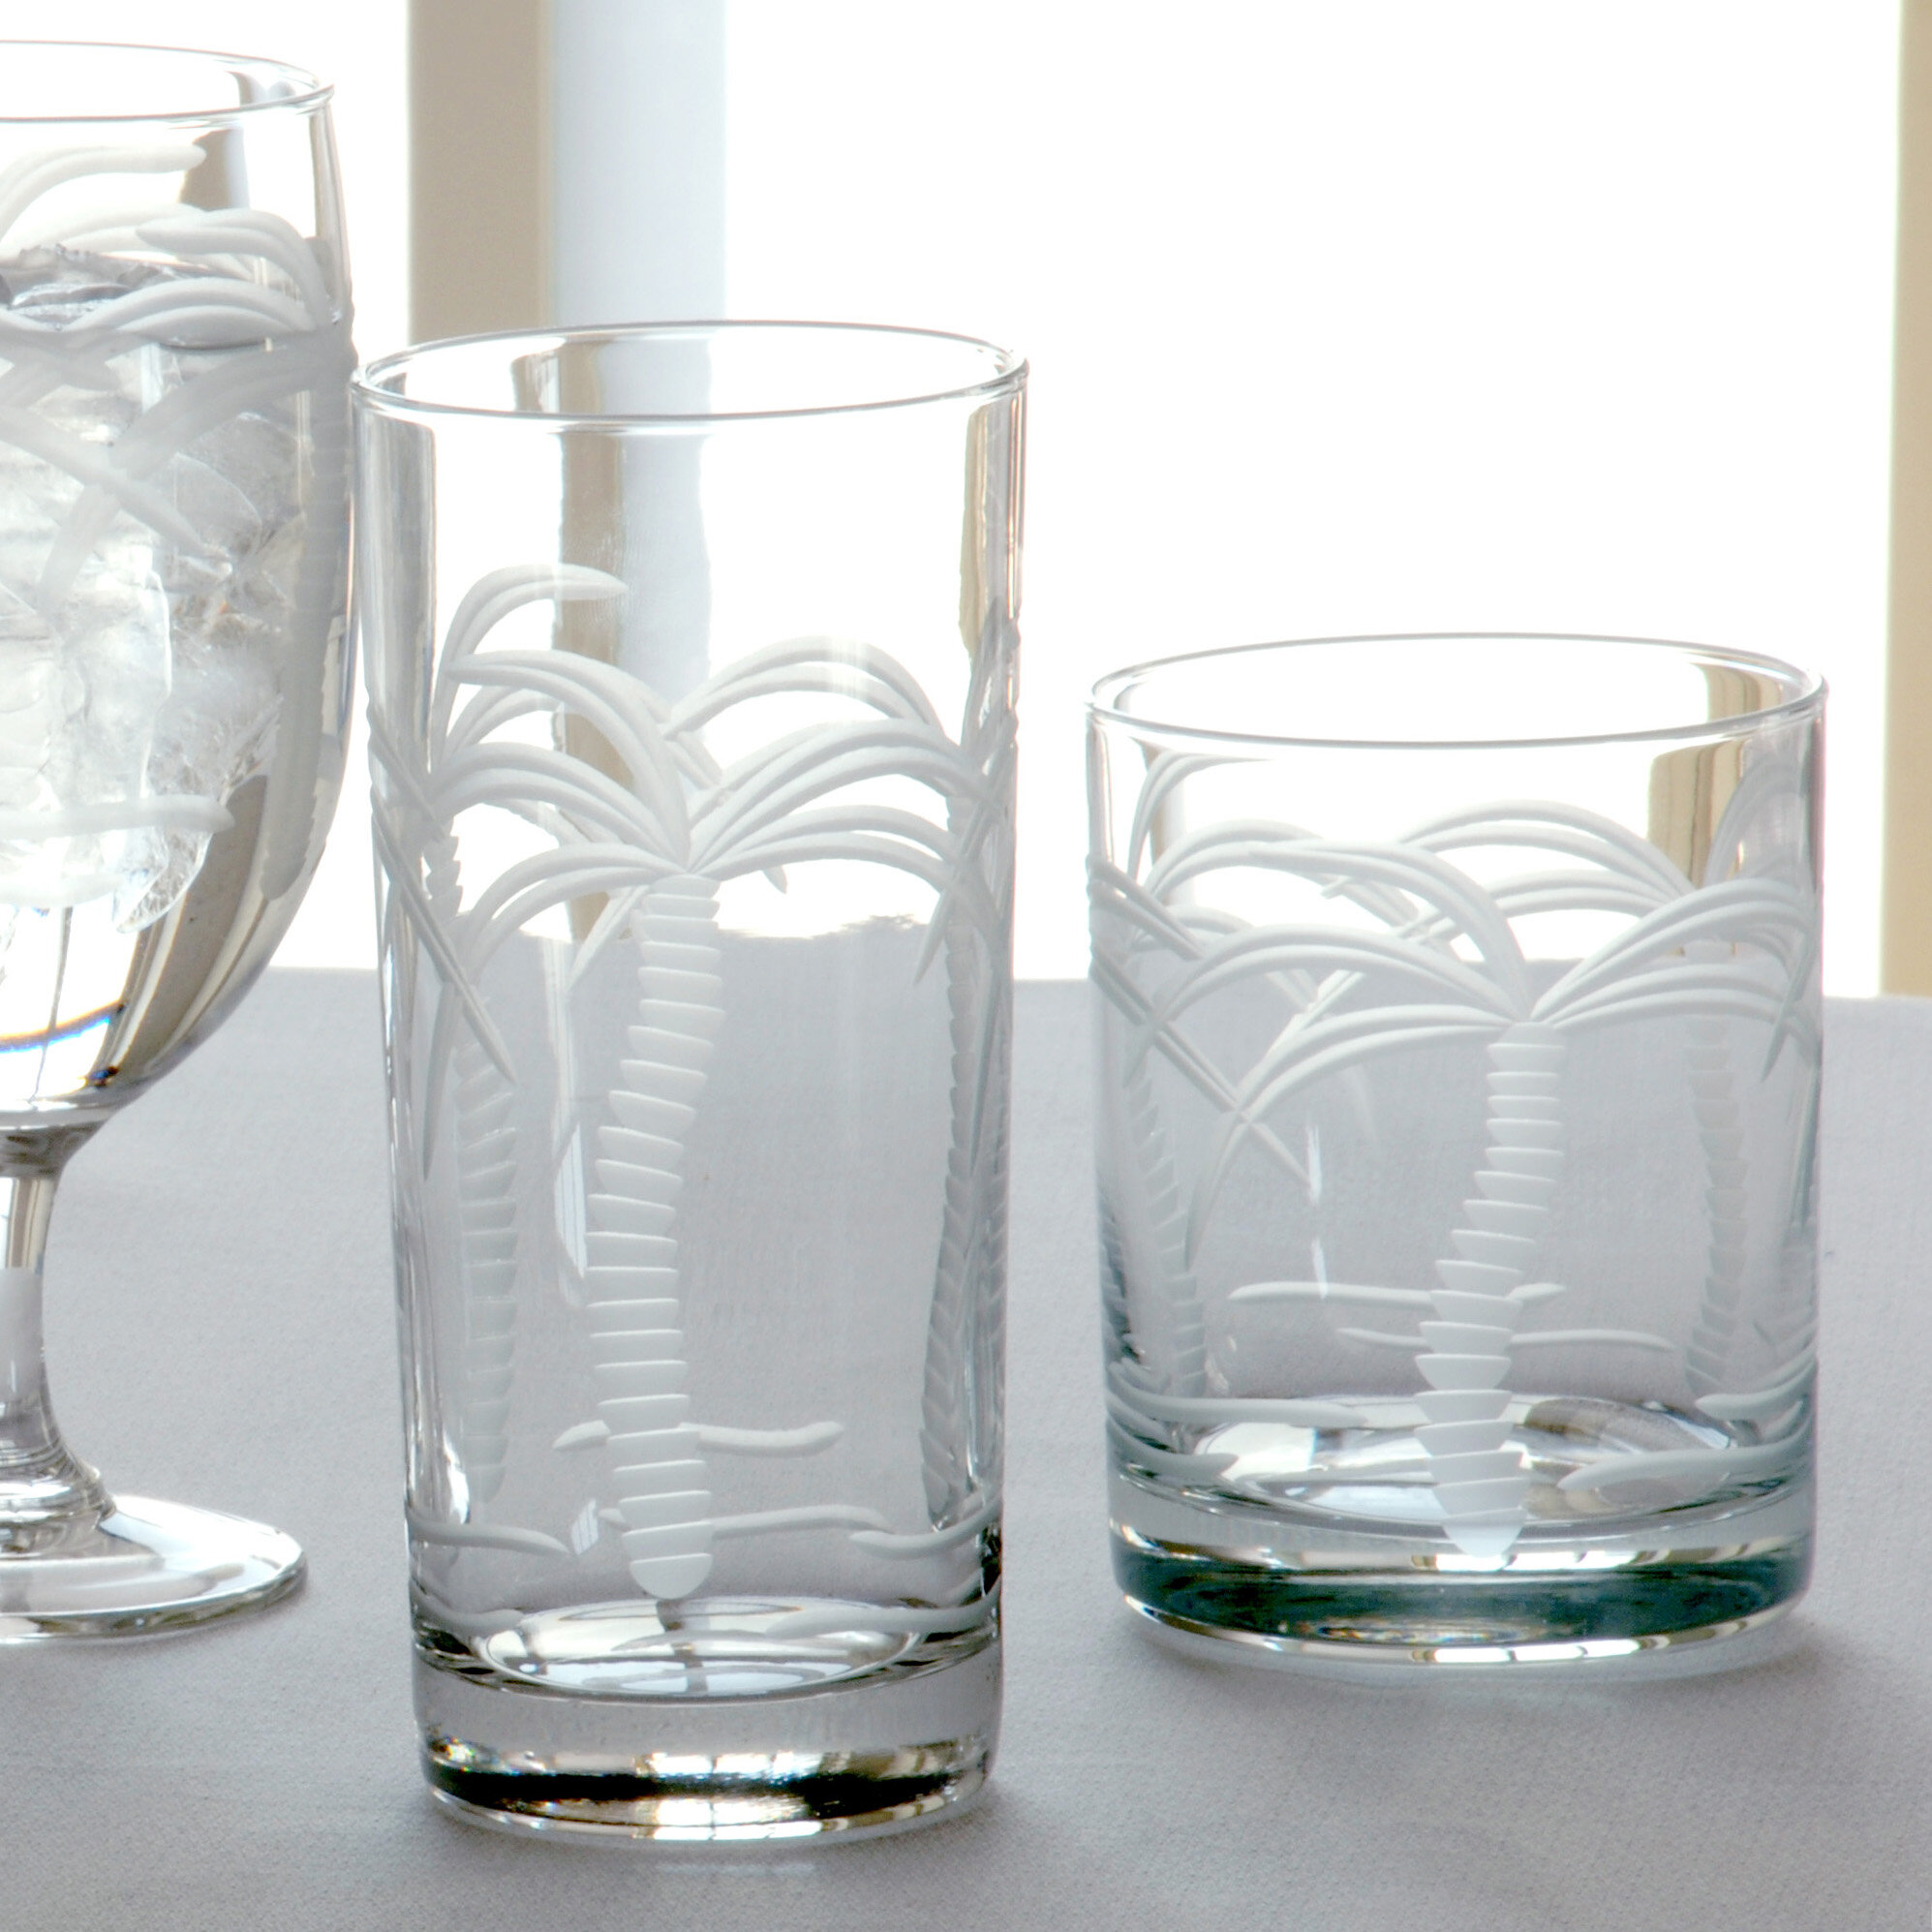 rolf glass palm tree 14 oz double old fashioned glass set of 4 ebay. Black Bedroom Furniture Sets. Home Design Ideas